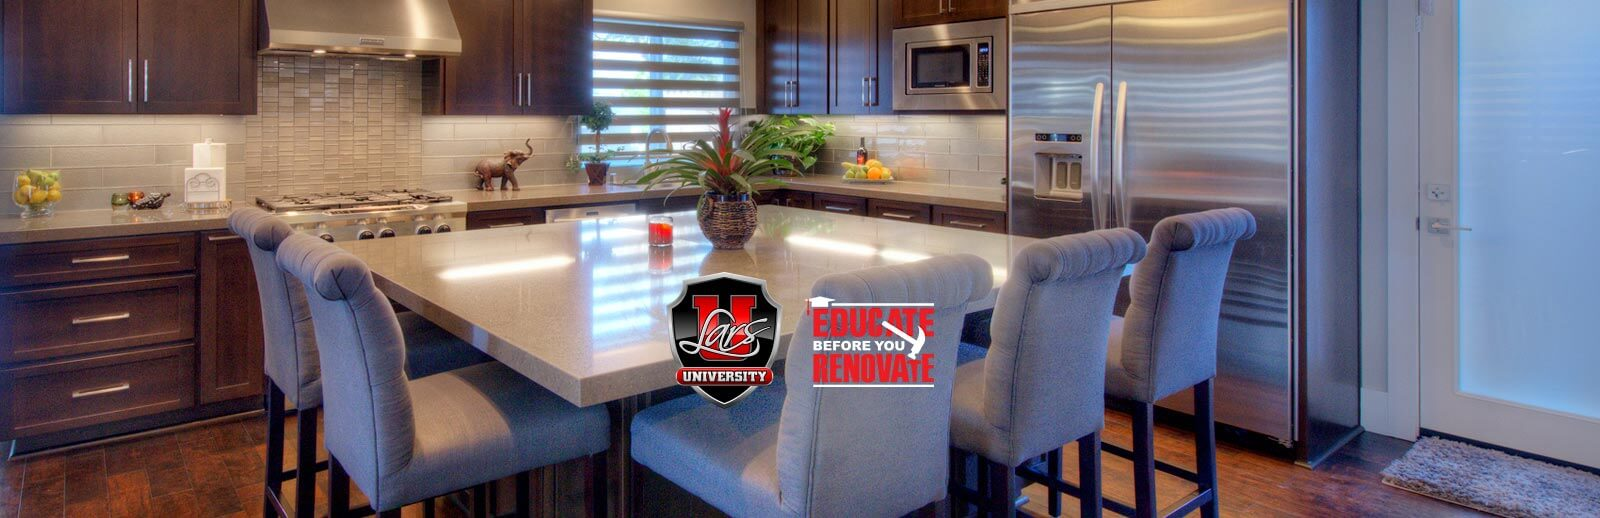 Kitchen Remodeling San Diego Exterior Interior Awesome San Diego Remodeling  Home Remodel & Renovations  Lars . Design Inspiration